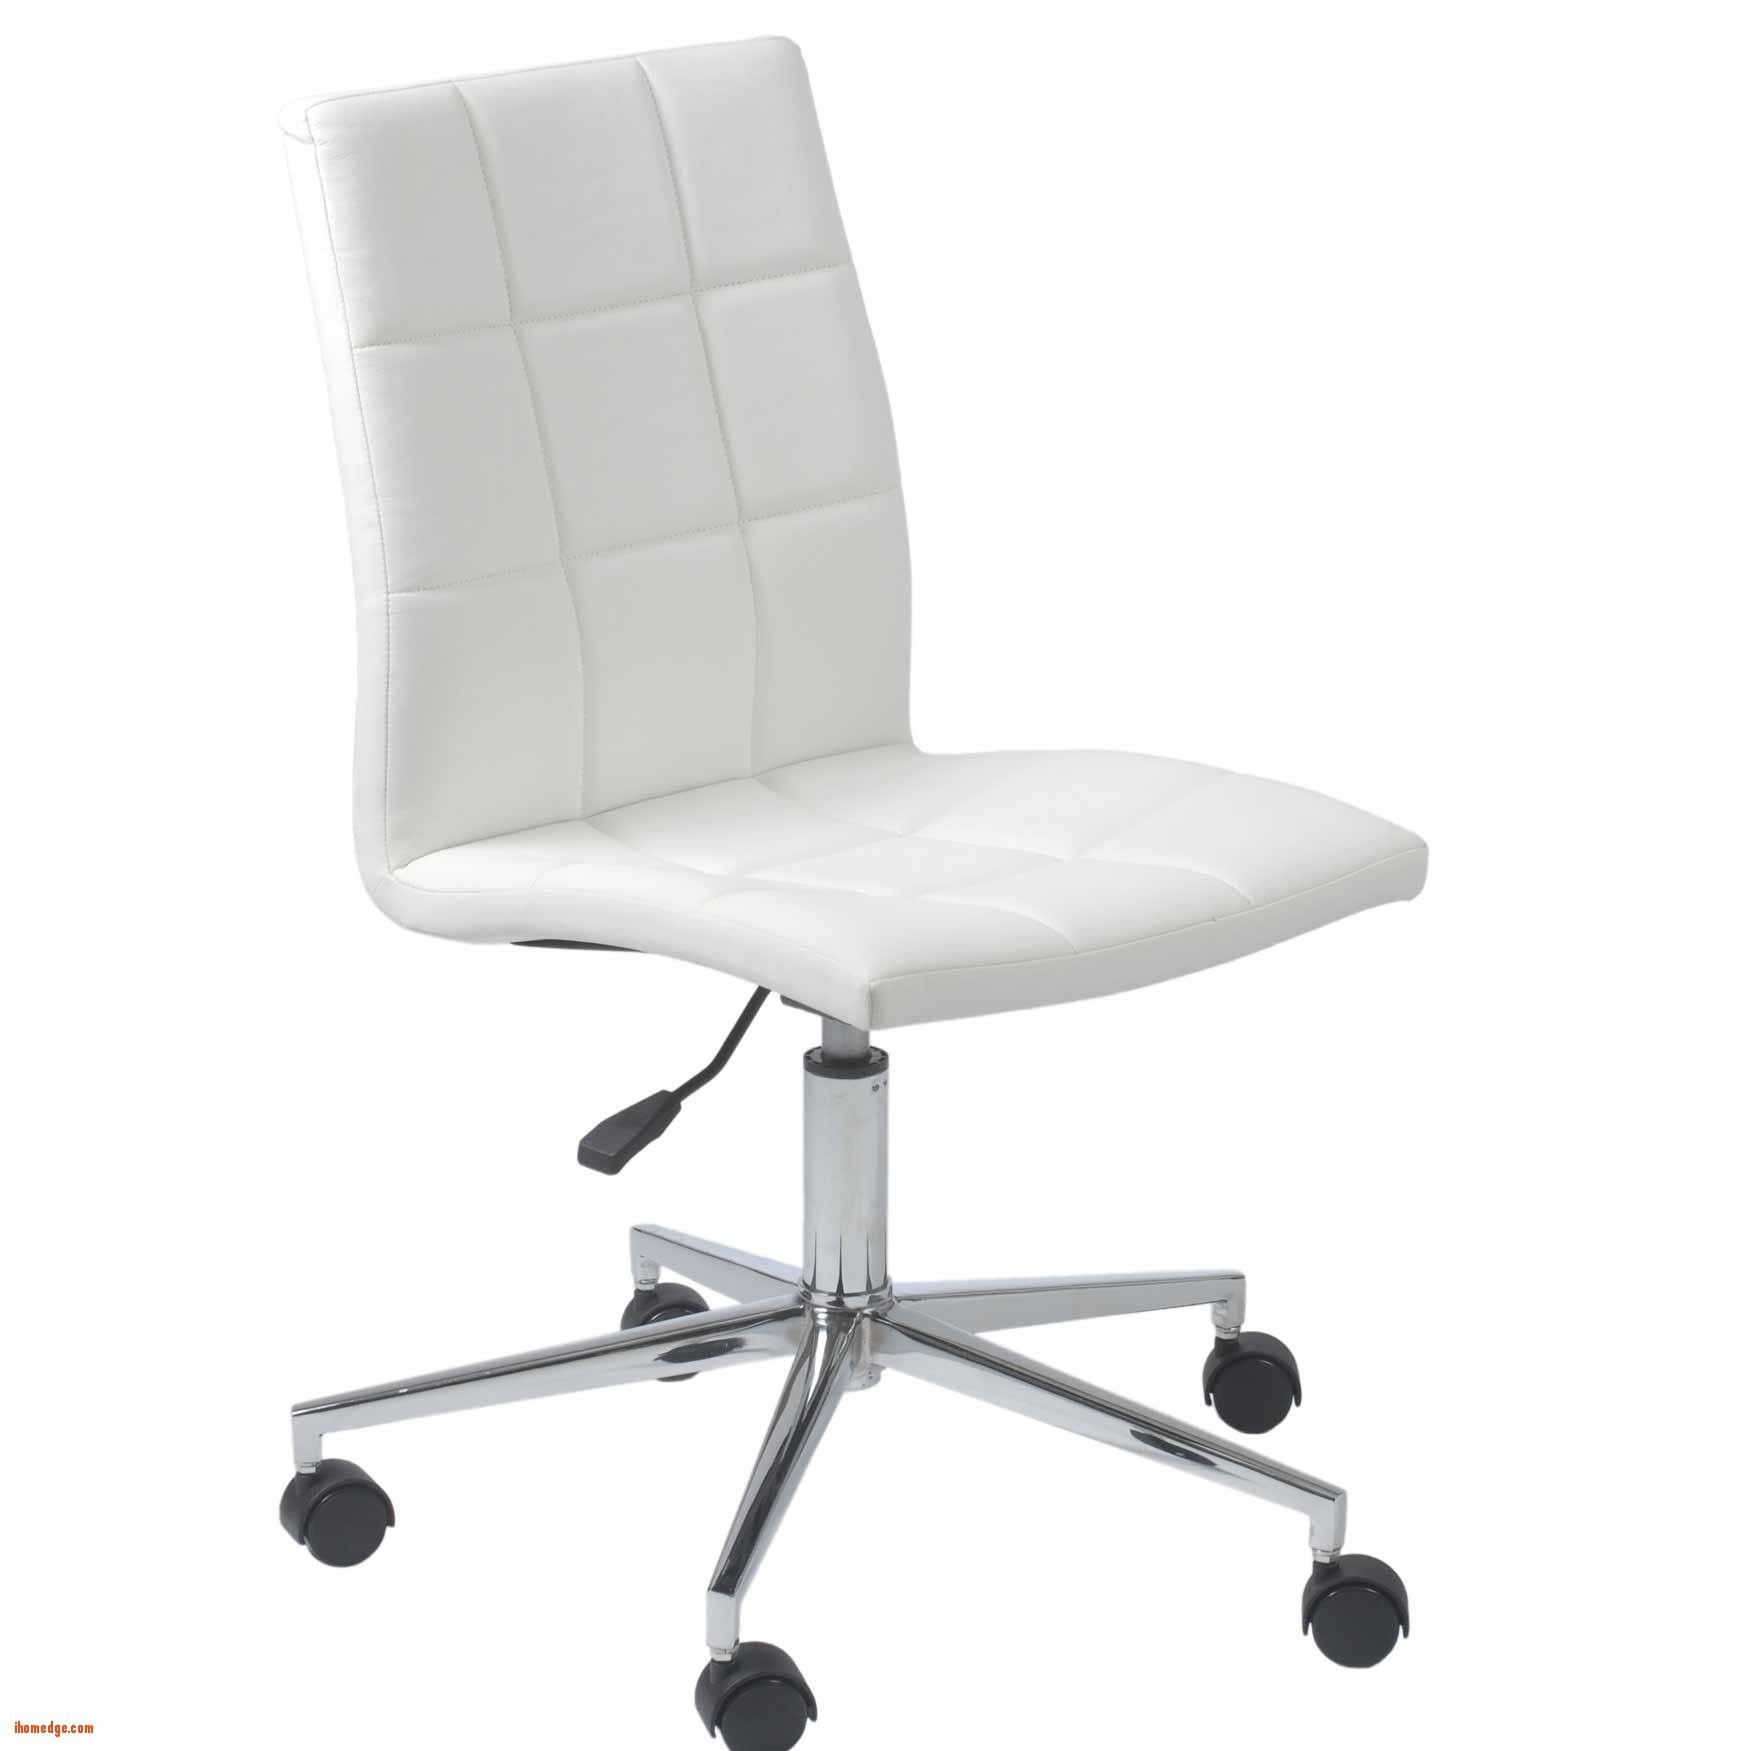 Cool New Modern Desk Chair , Upholstered Fice Chair No Wheels ,  Http://ihomedge.com/modern Desk Chair/4959